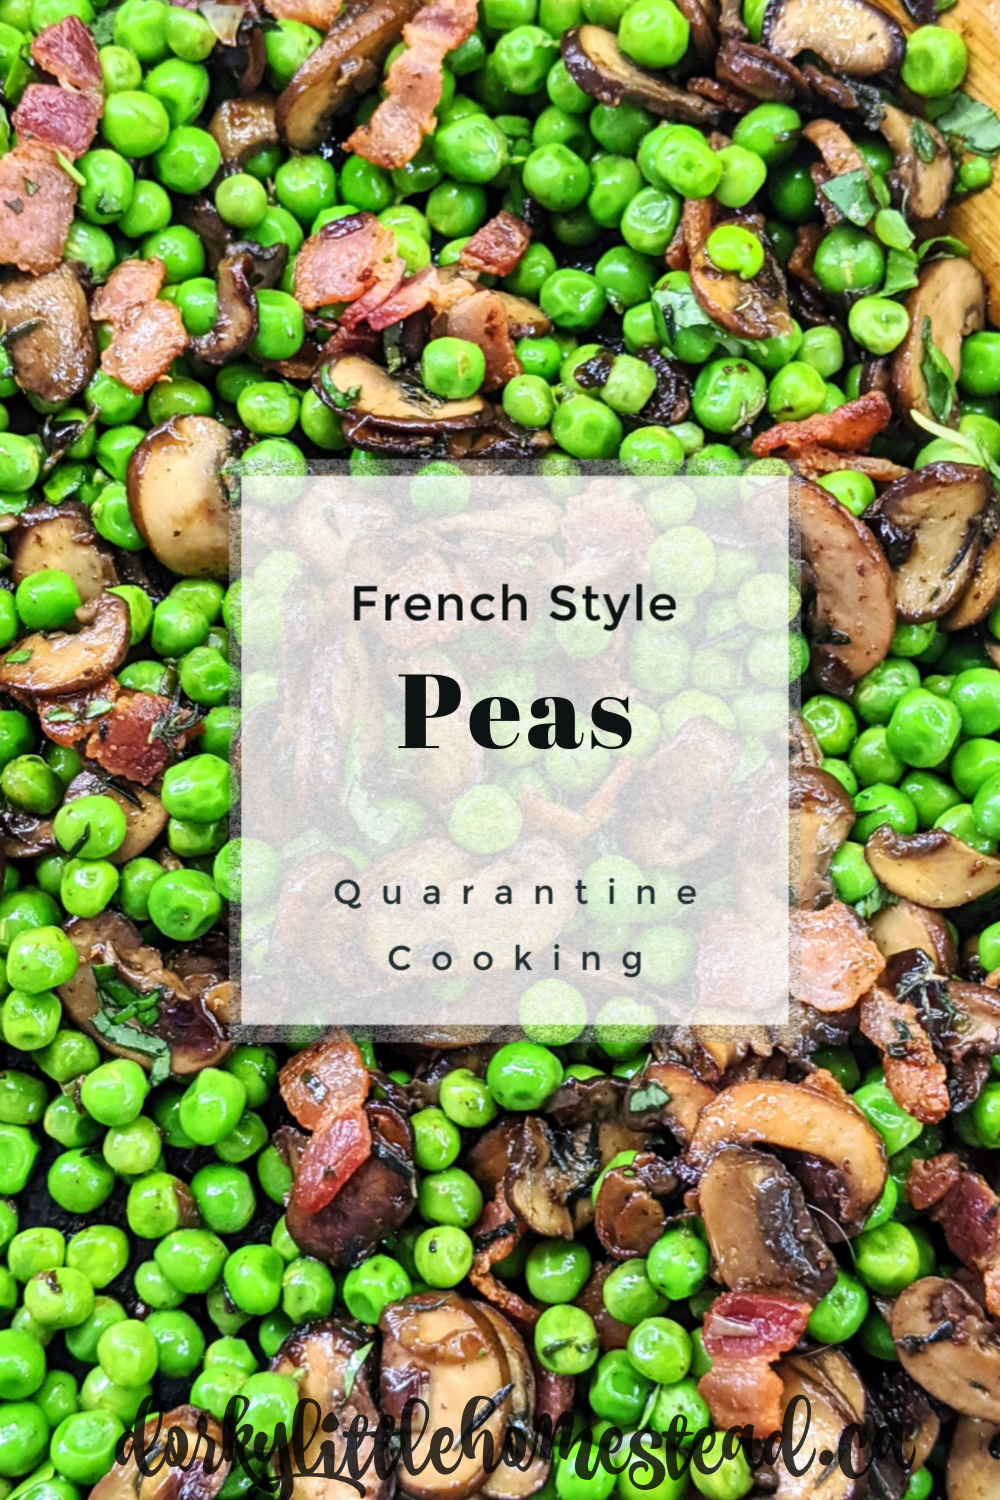 French style peas are a great quarantine recipe.